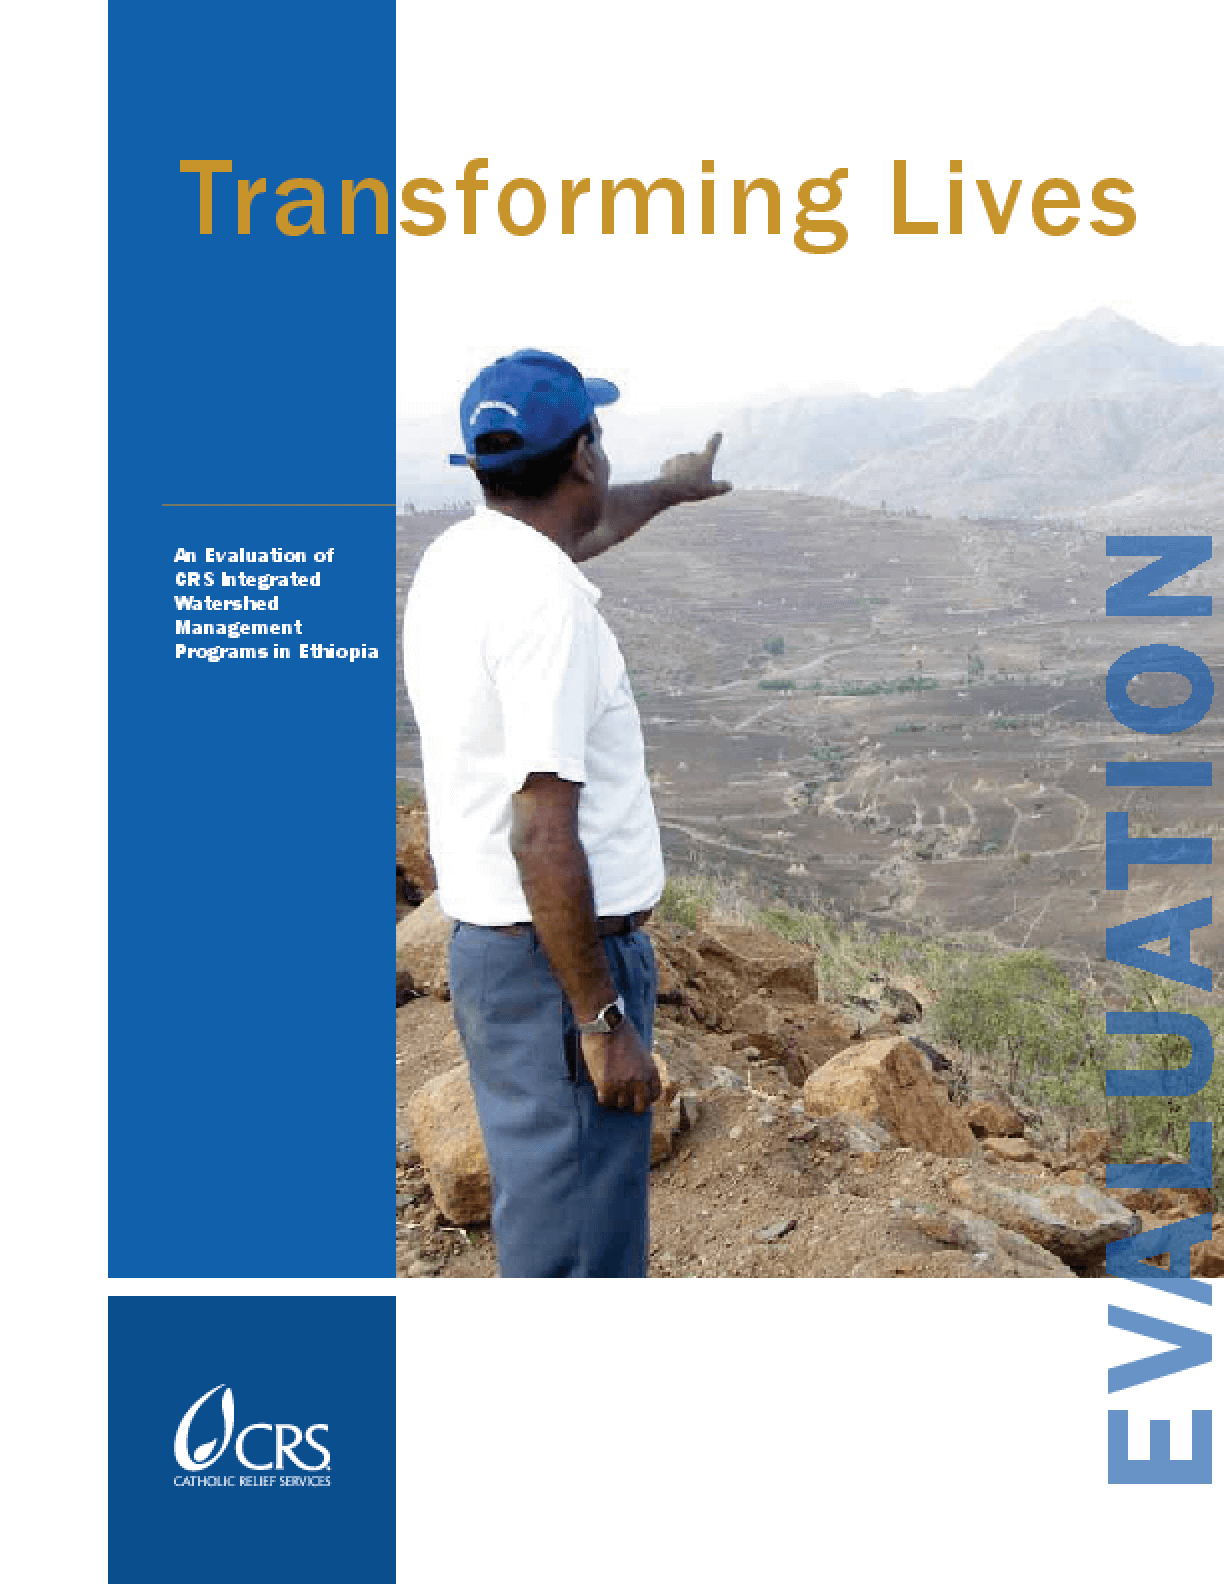 Transforming Lives: An Evaluation of CRS Integrated Watershed Management Programs in Ethiopia